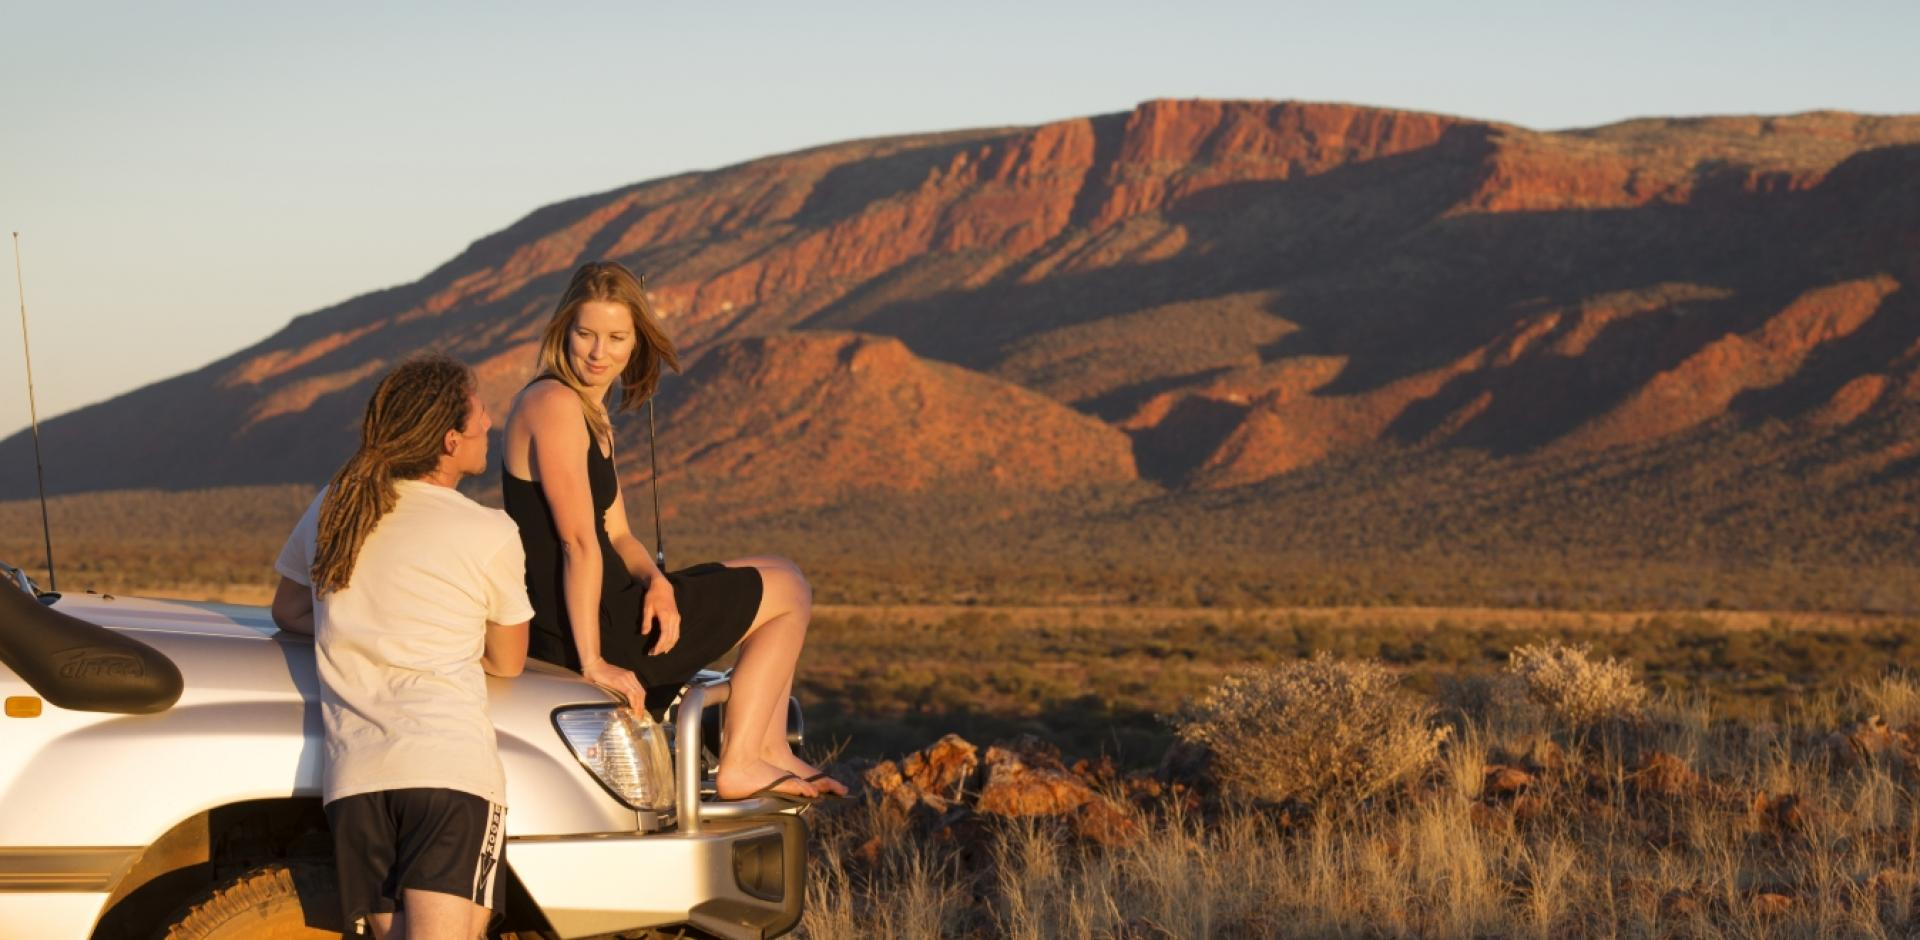 australia u0026 39 s golden outback official tourism site